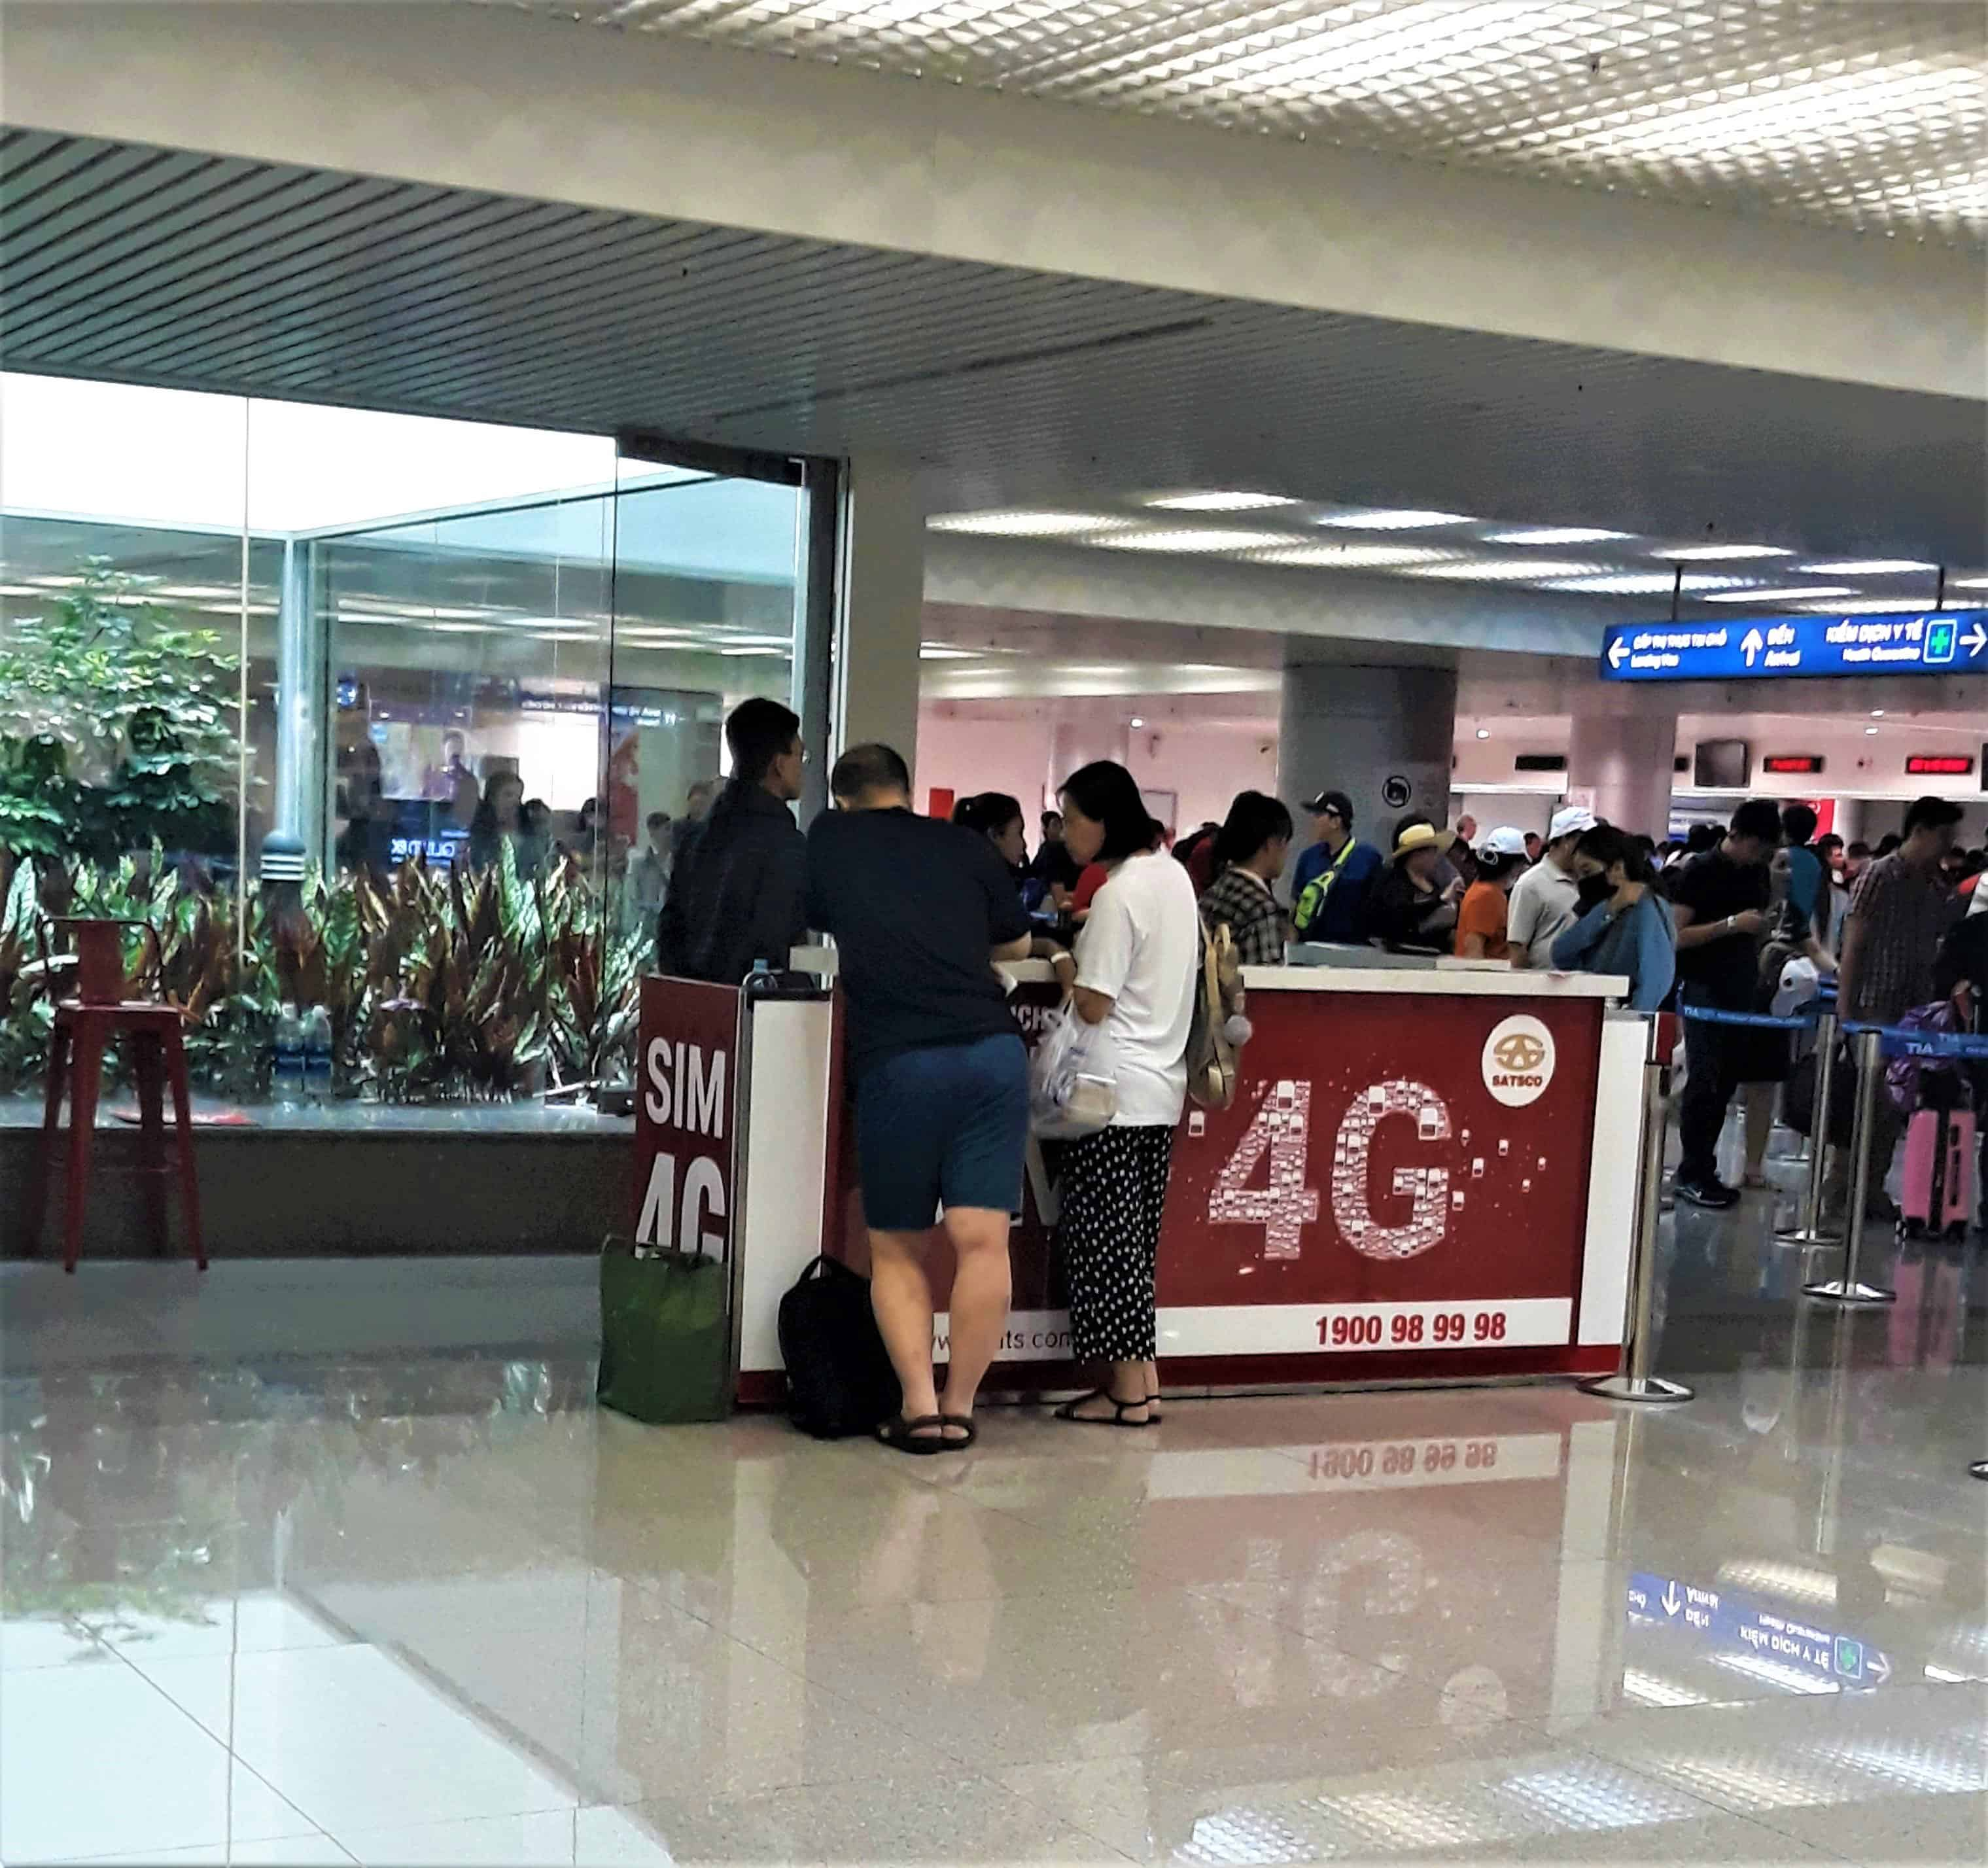 Sim card counter located at second floor (Before you get in line for imigration custom)